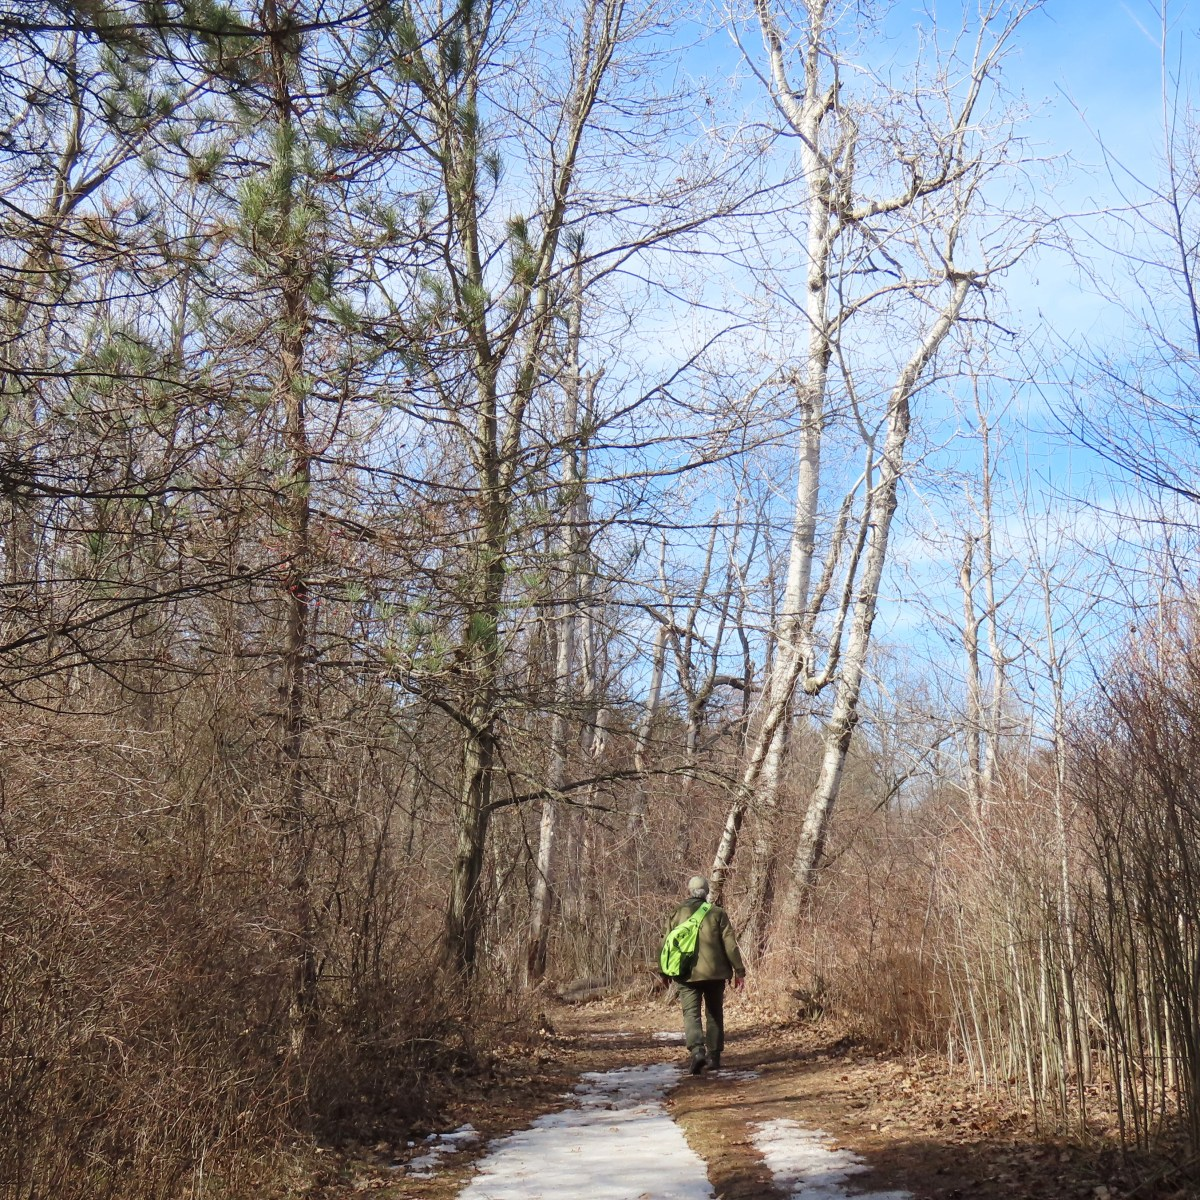 A man, with his back to the camera, hikes down a dirt path through the woods